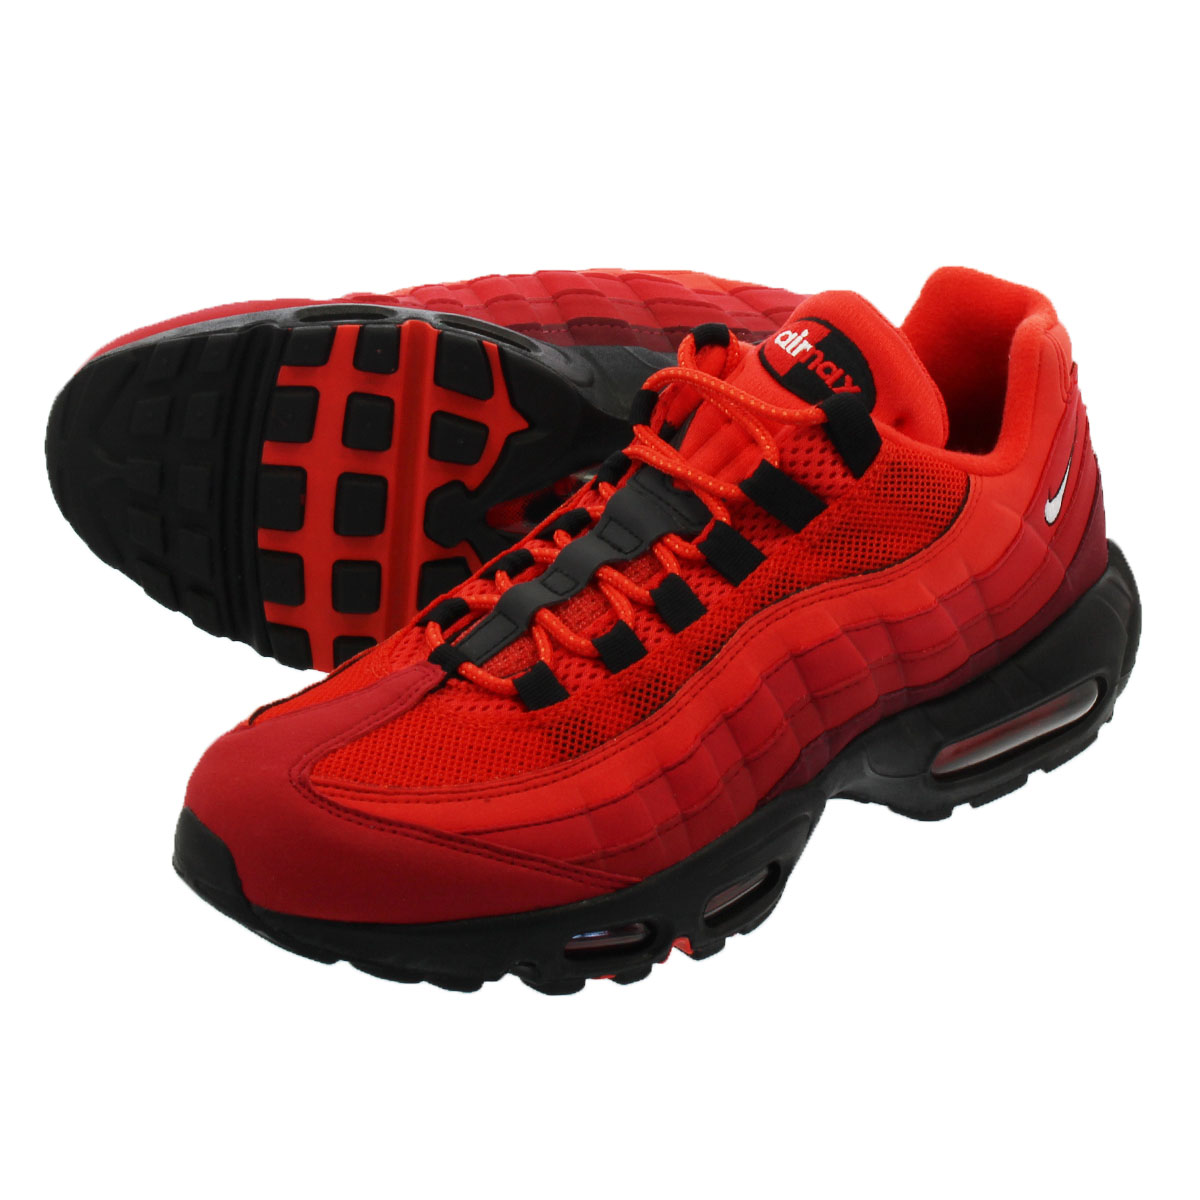 big sale be372 8d507 LOWTEX PLUS: NIKE AIR MAX 95 OG Kie Ney AMAX 95 OG HABANERO ...